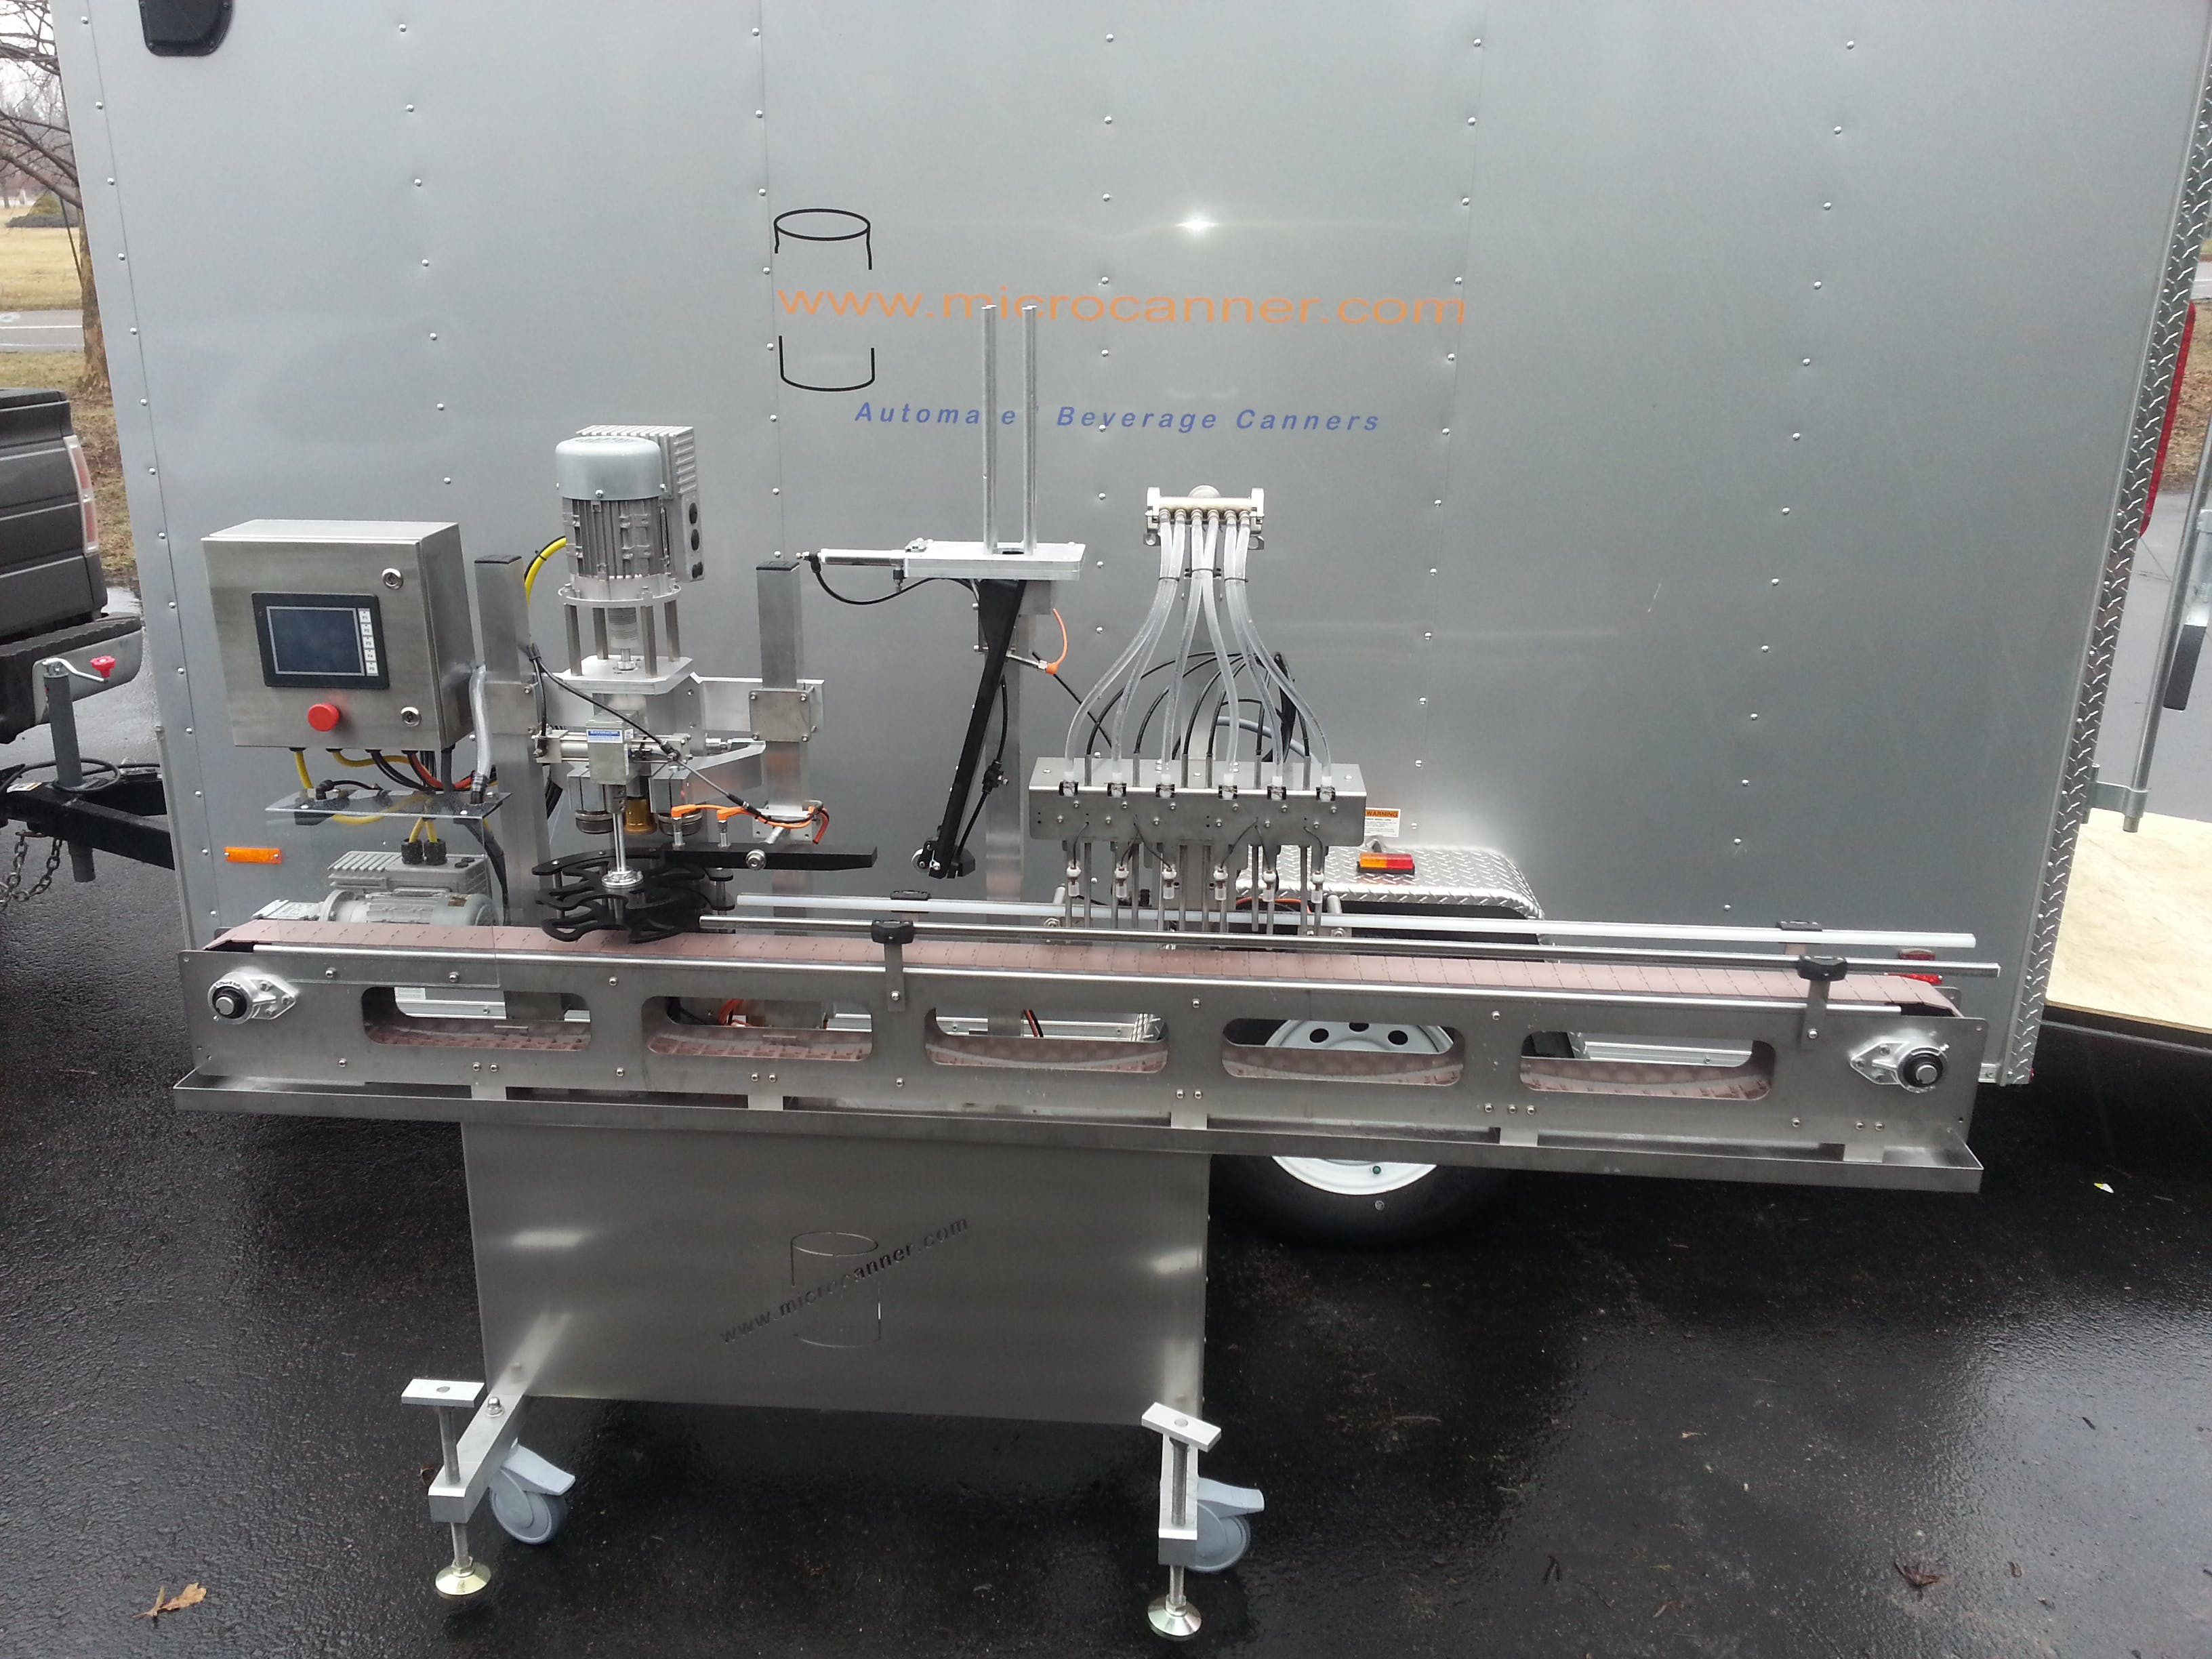 Base System - MC-201 Base Can Unit - sold by Microcanner